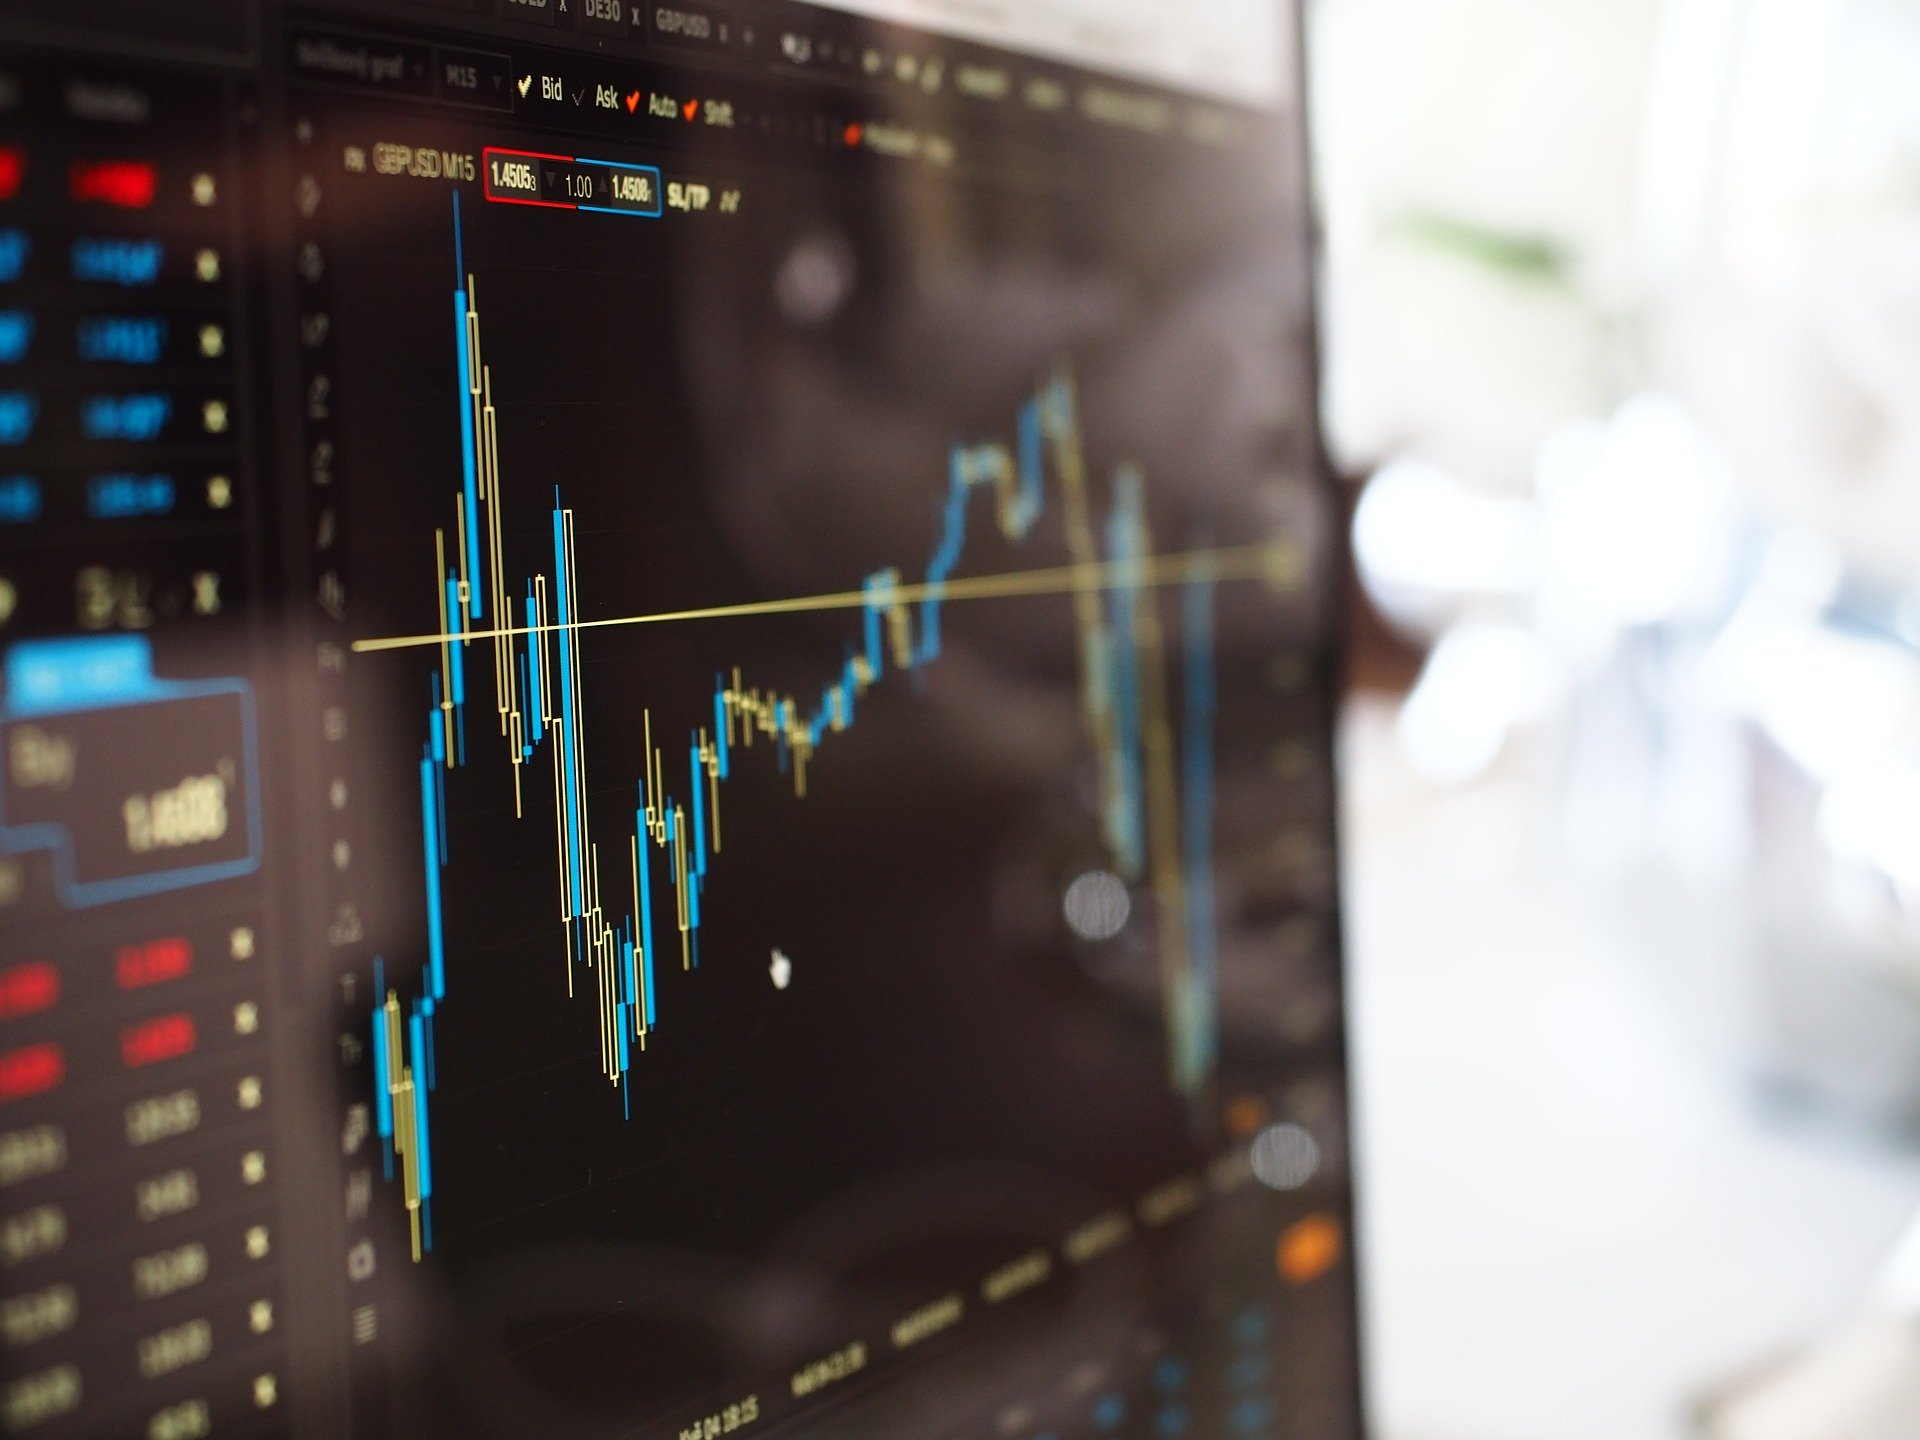 image3 - Fundamental Analysis Explained: A Trader's Tools For Profitability